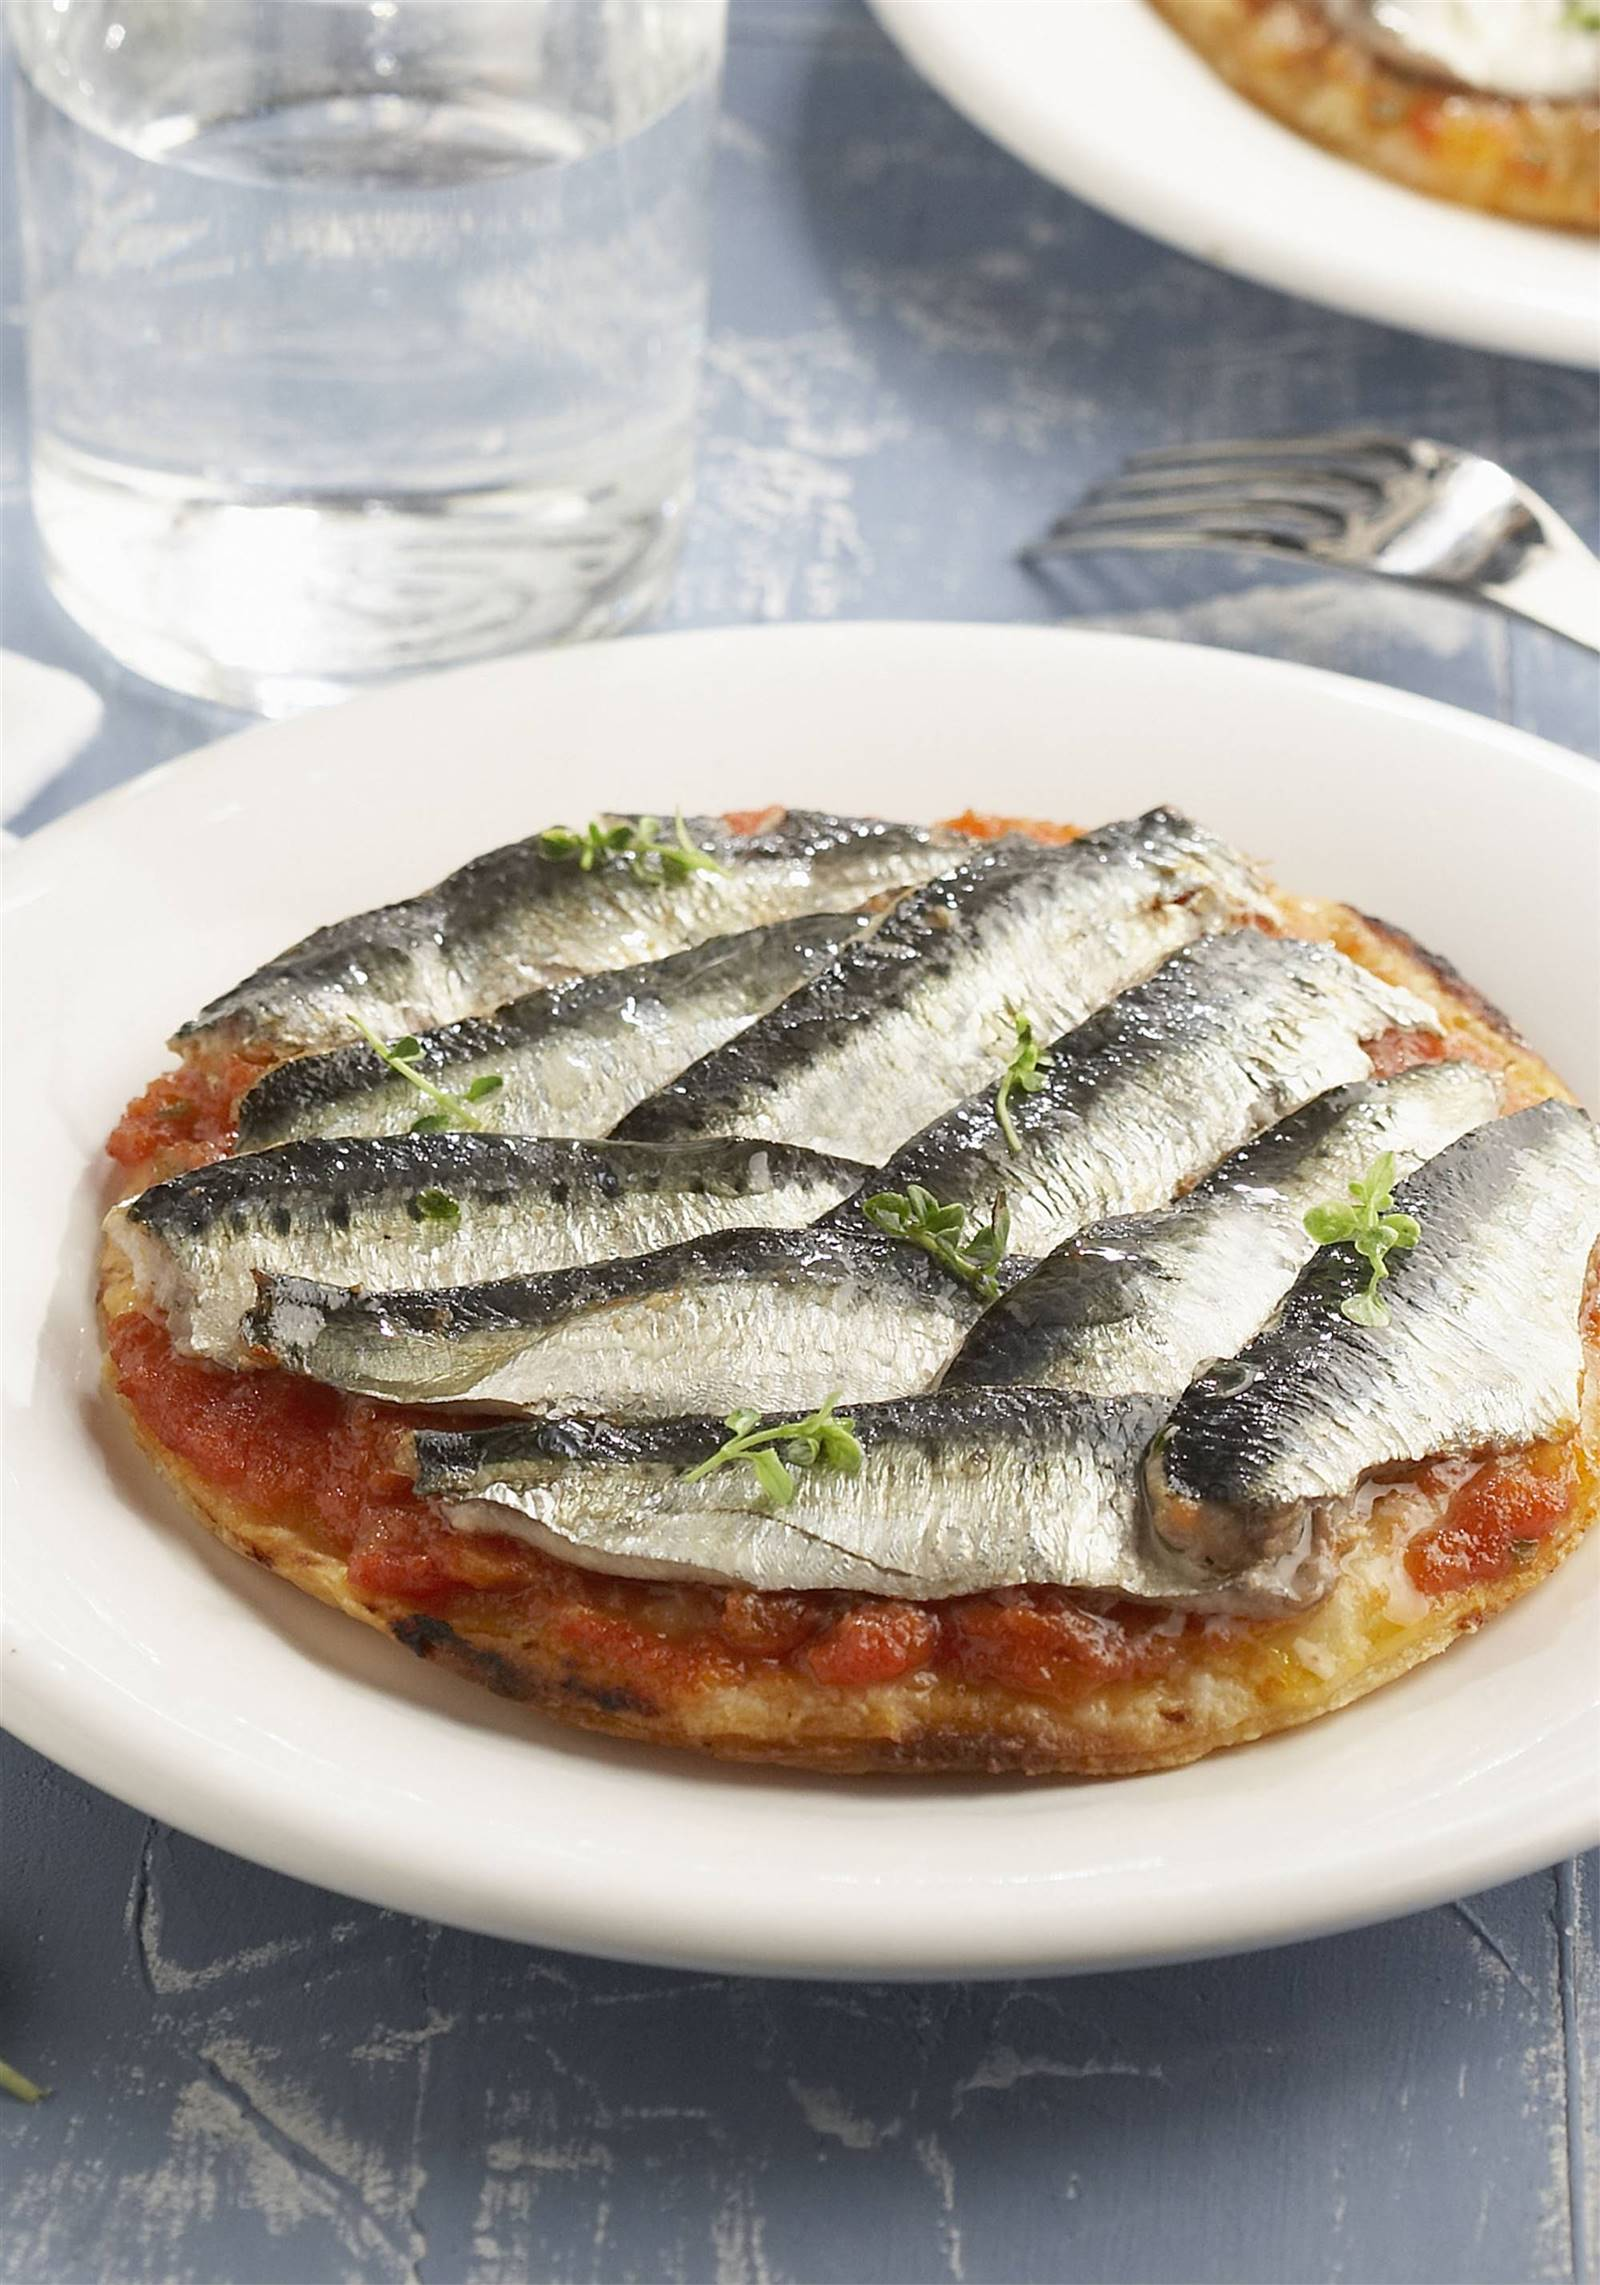 pizza saludable toppings ligeros sardinas